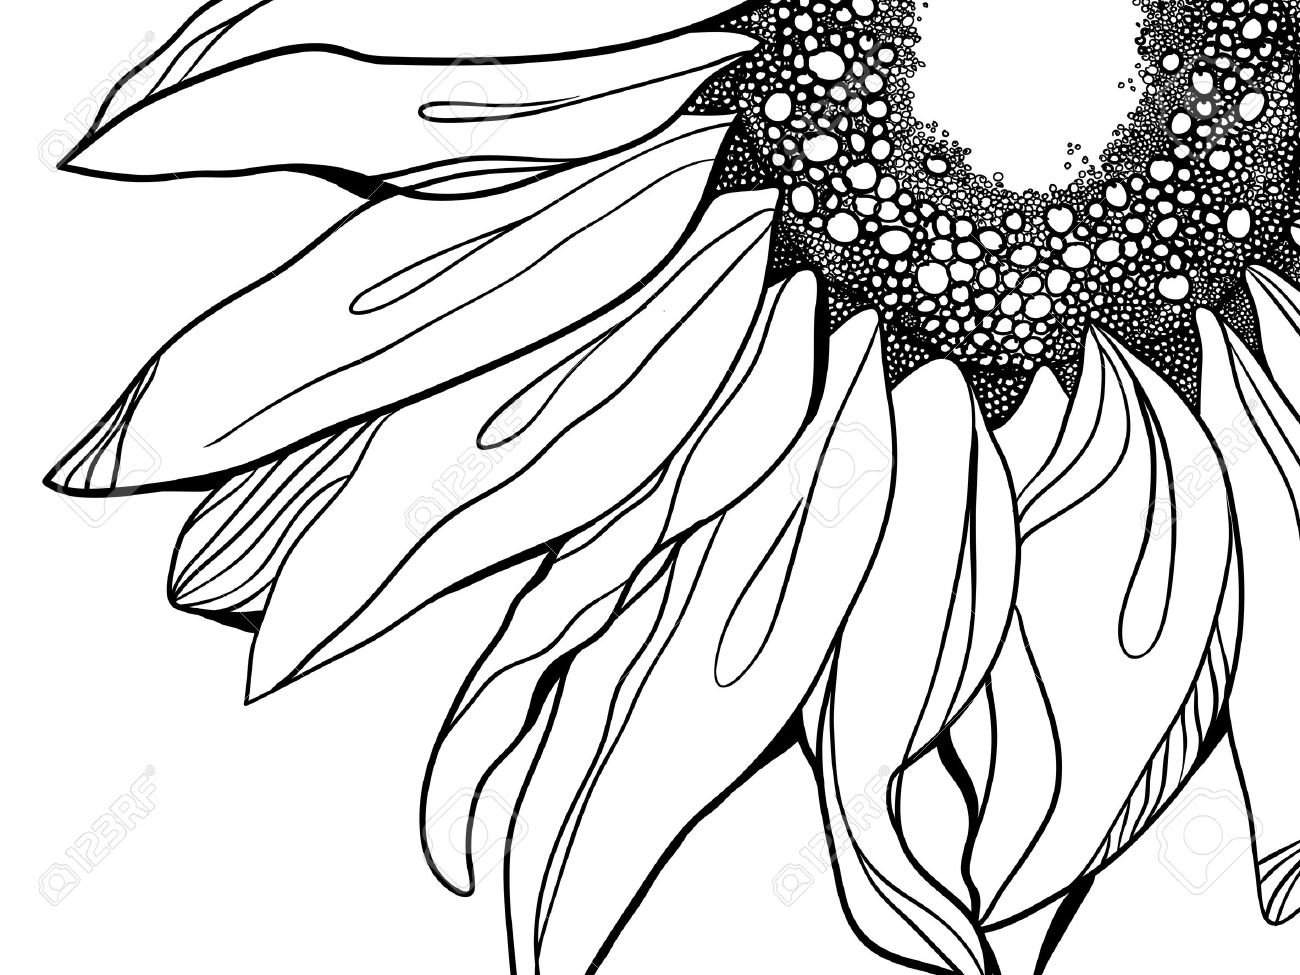 1300x975 Sunflower Illustration Royalty Free Cliparts, Vectors, And Stock